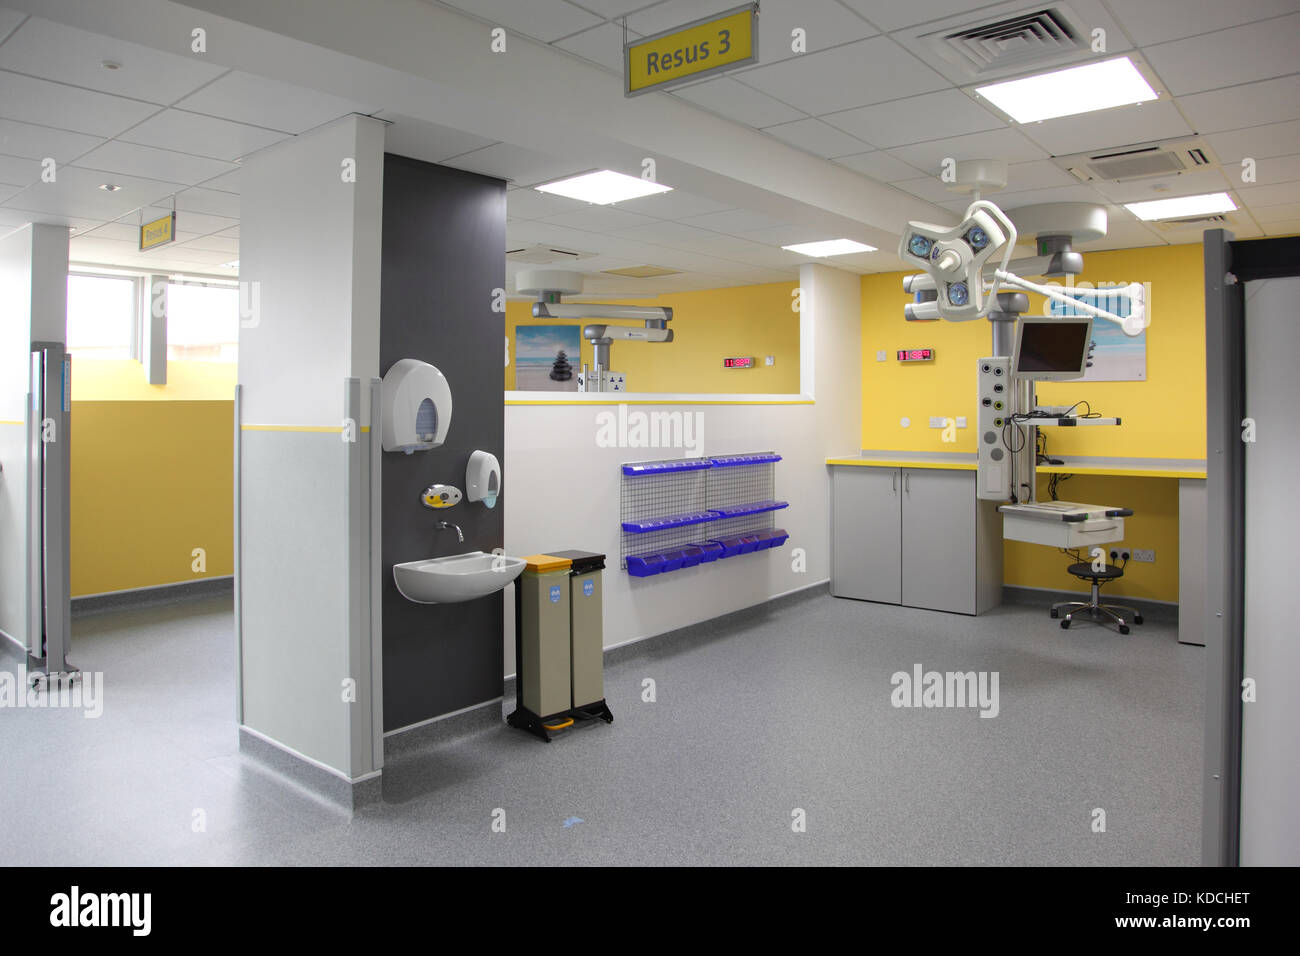 Interior view of the new accident and emergency unit at Newham University Hospital in London, UK - Stock Image